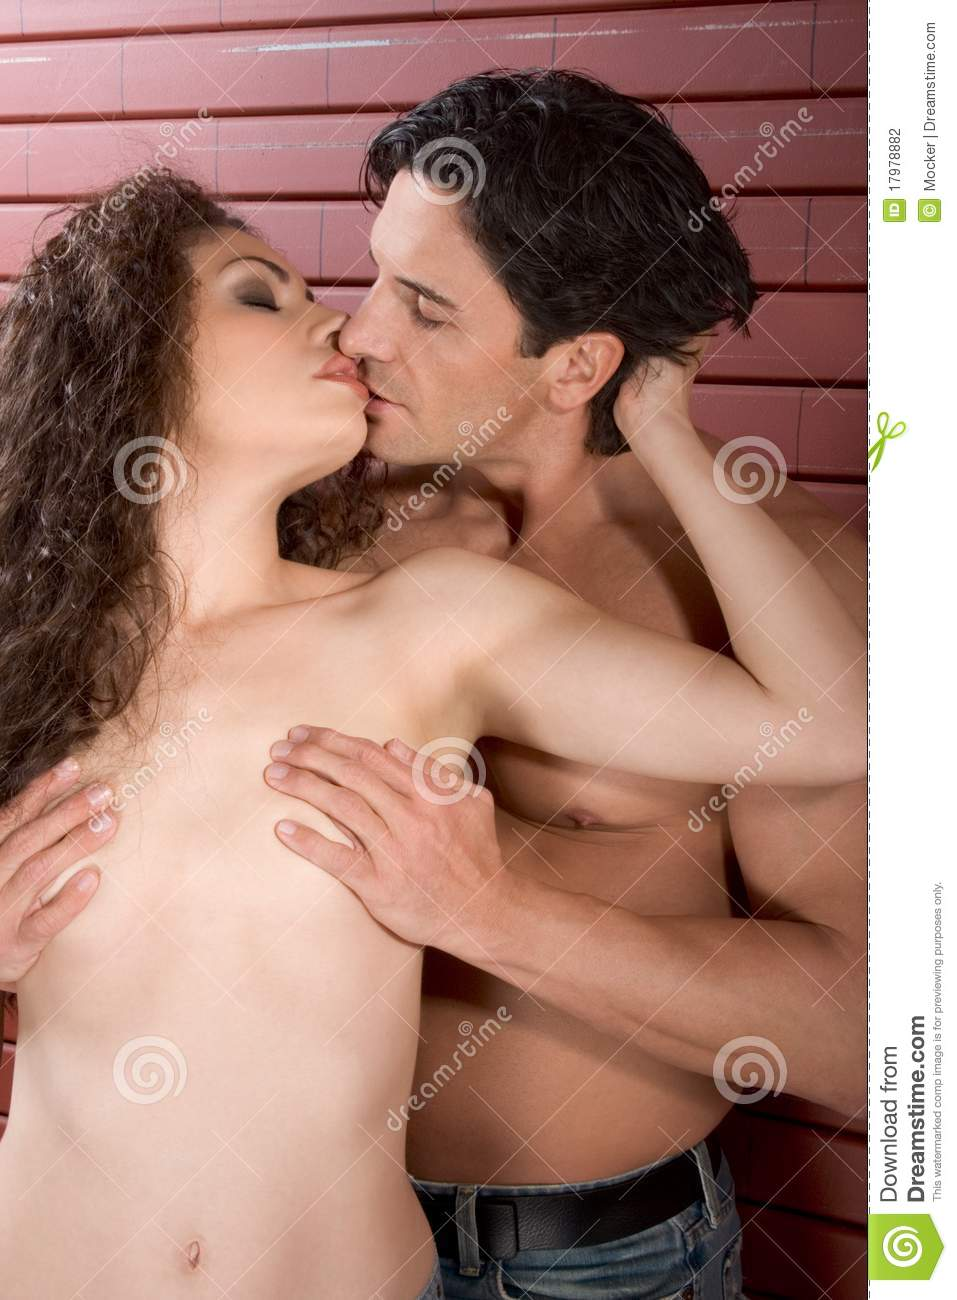 Pictures of lovemaking on the kitchen table